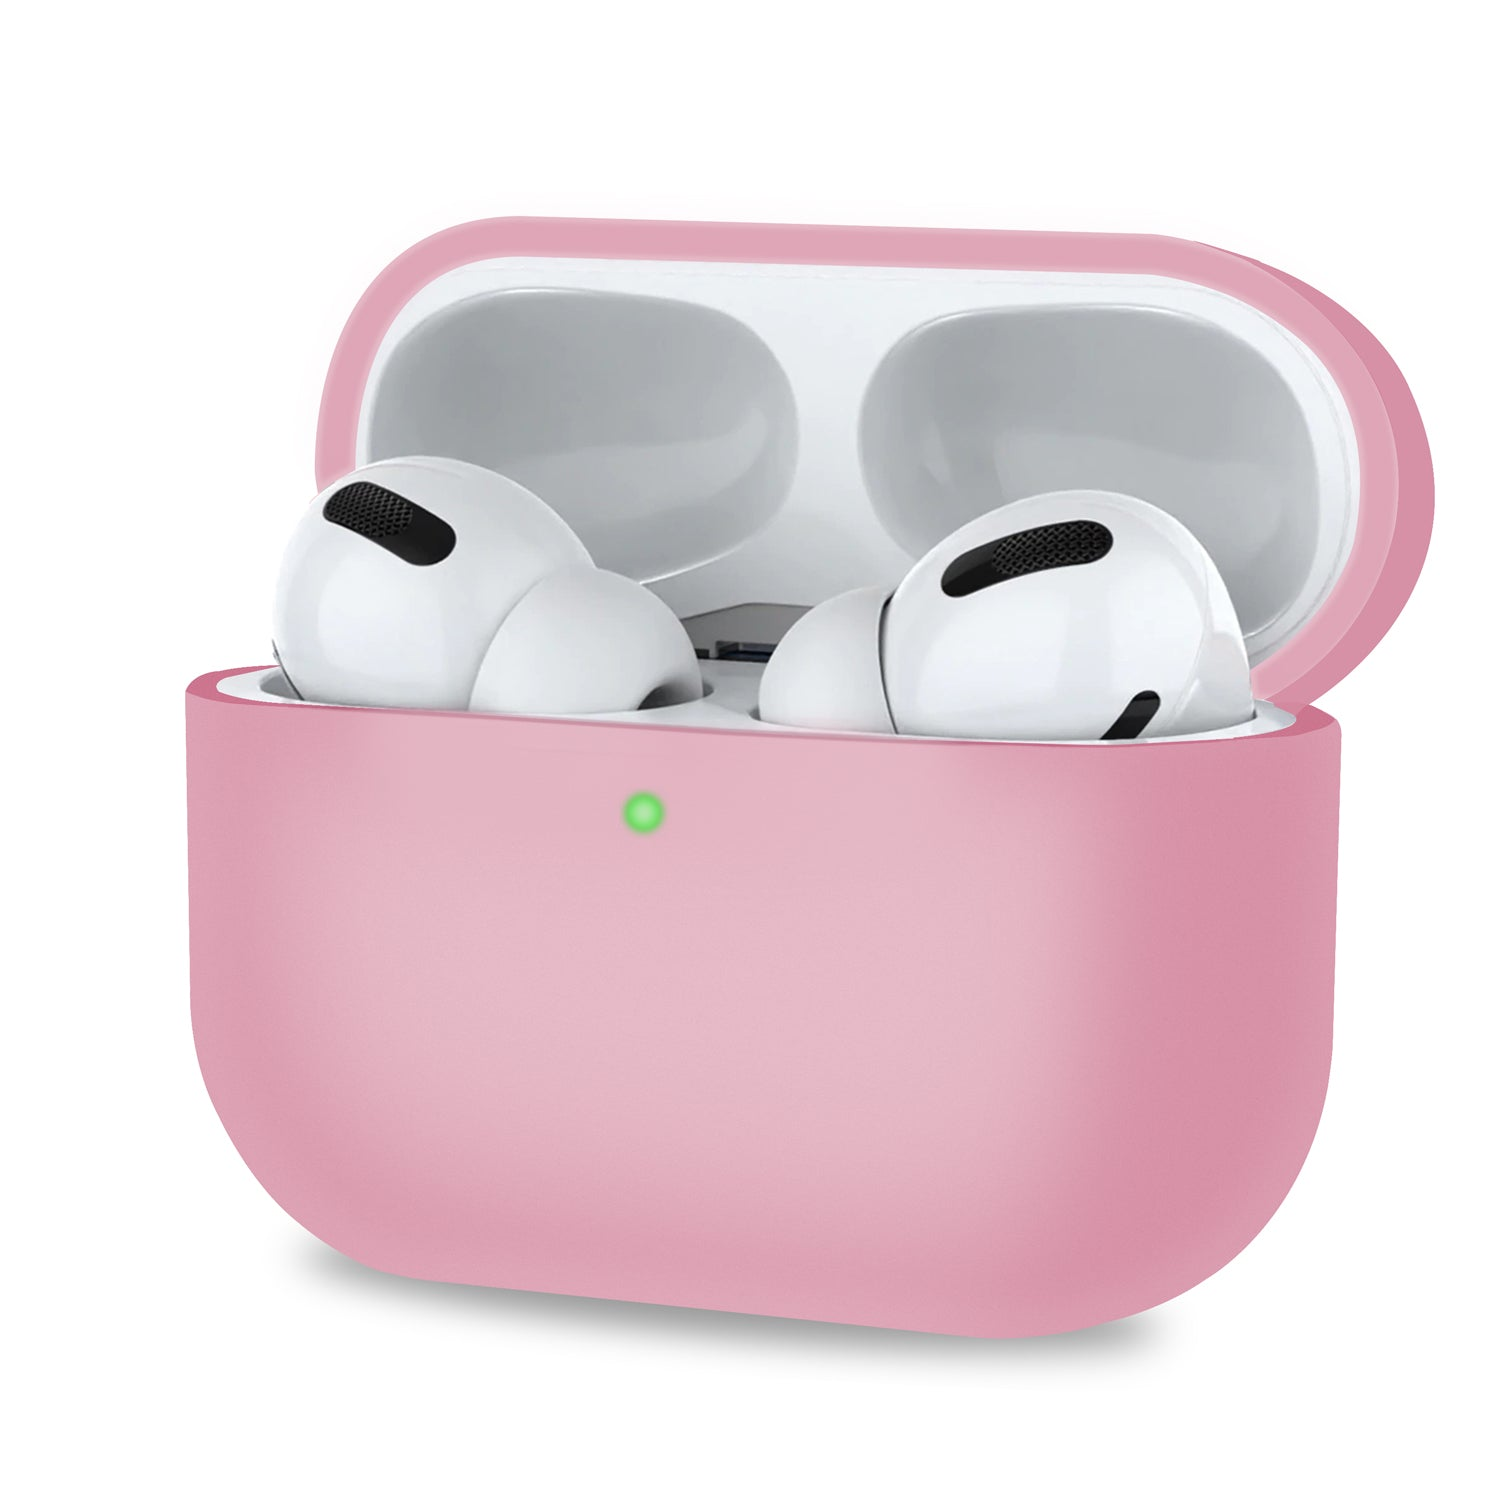 AirPods Pro Case Protective Matte Soft Silicone Case Cover Light Pink, Audio Accessories by TradeNRG